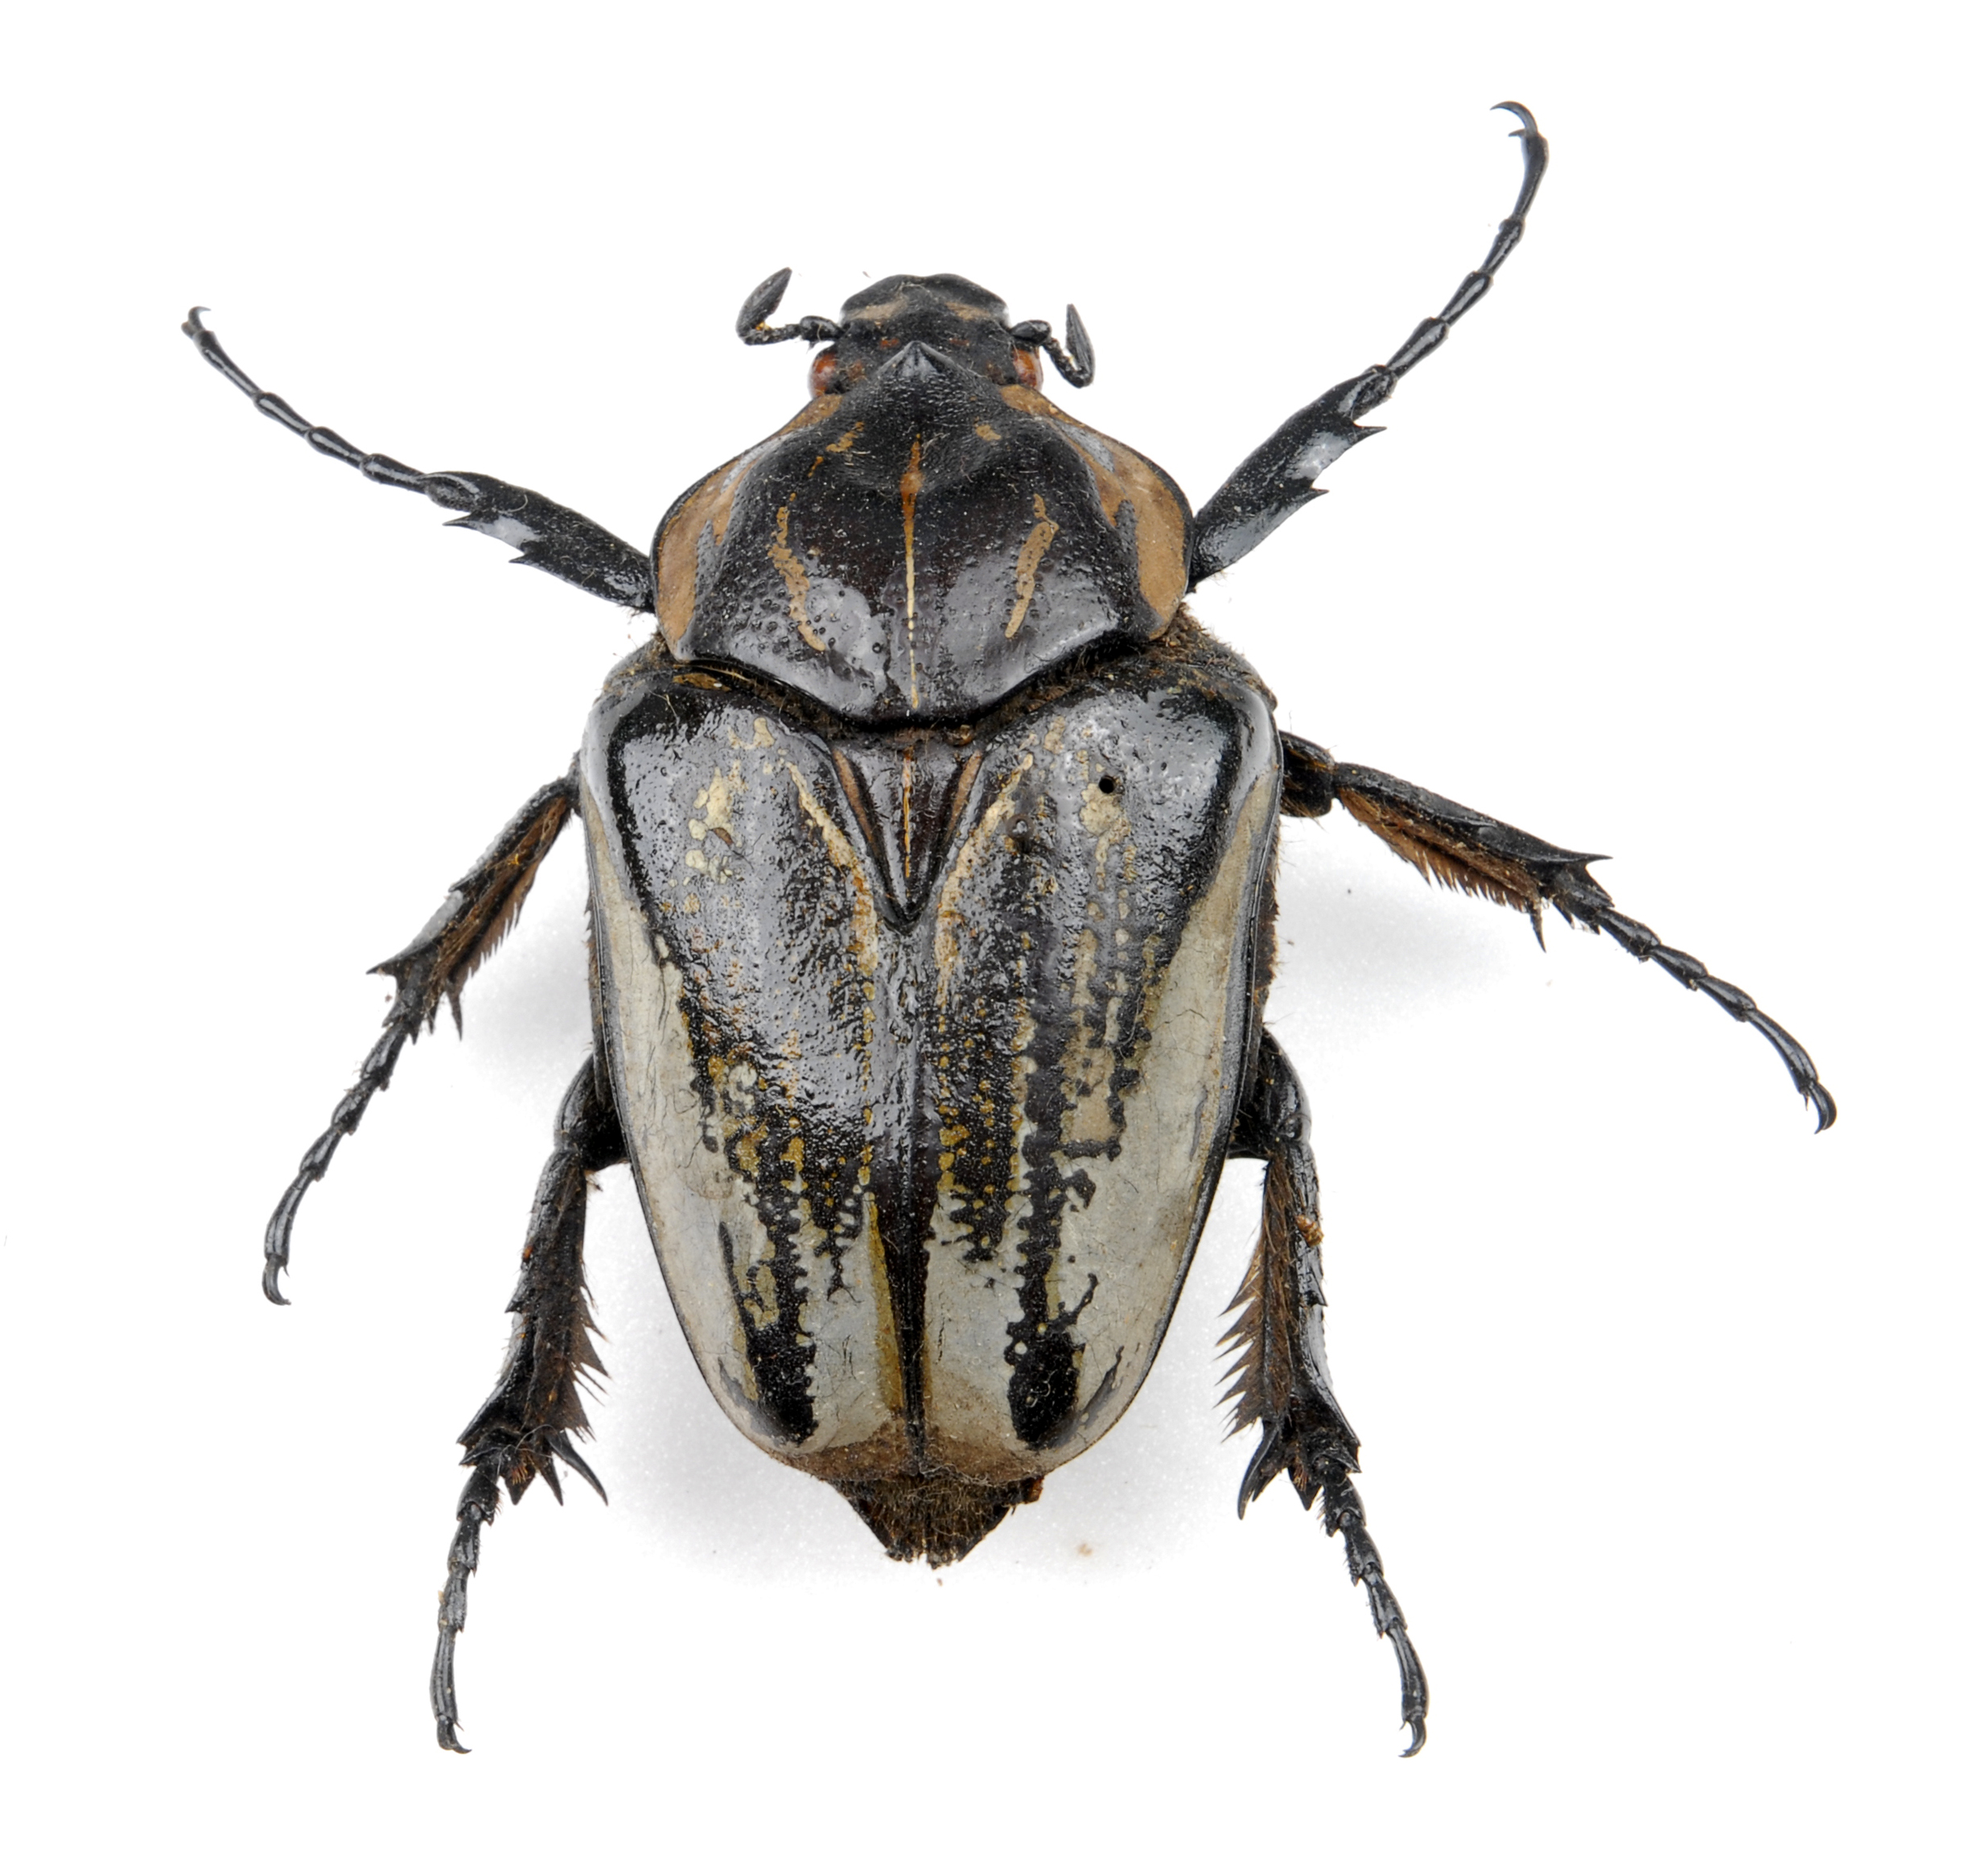 Colour photograph showing a mostly black beetle with some brown markings